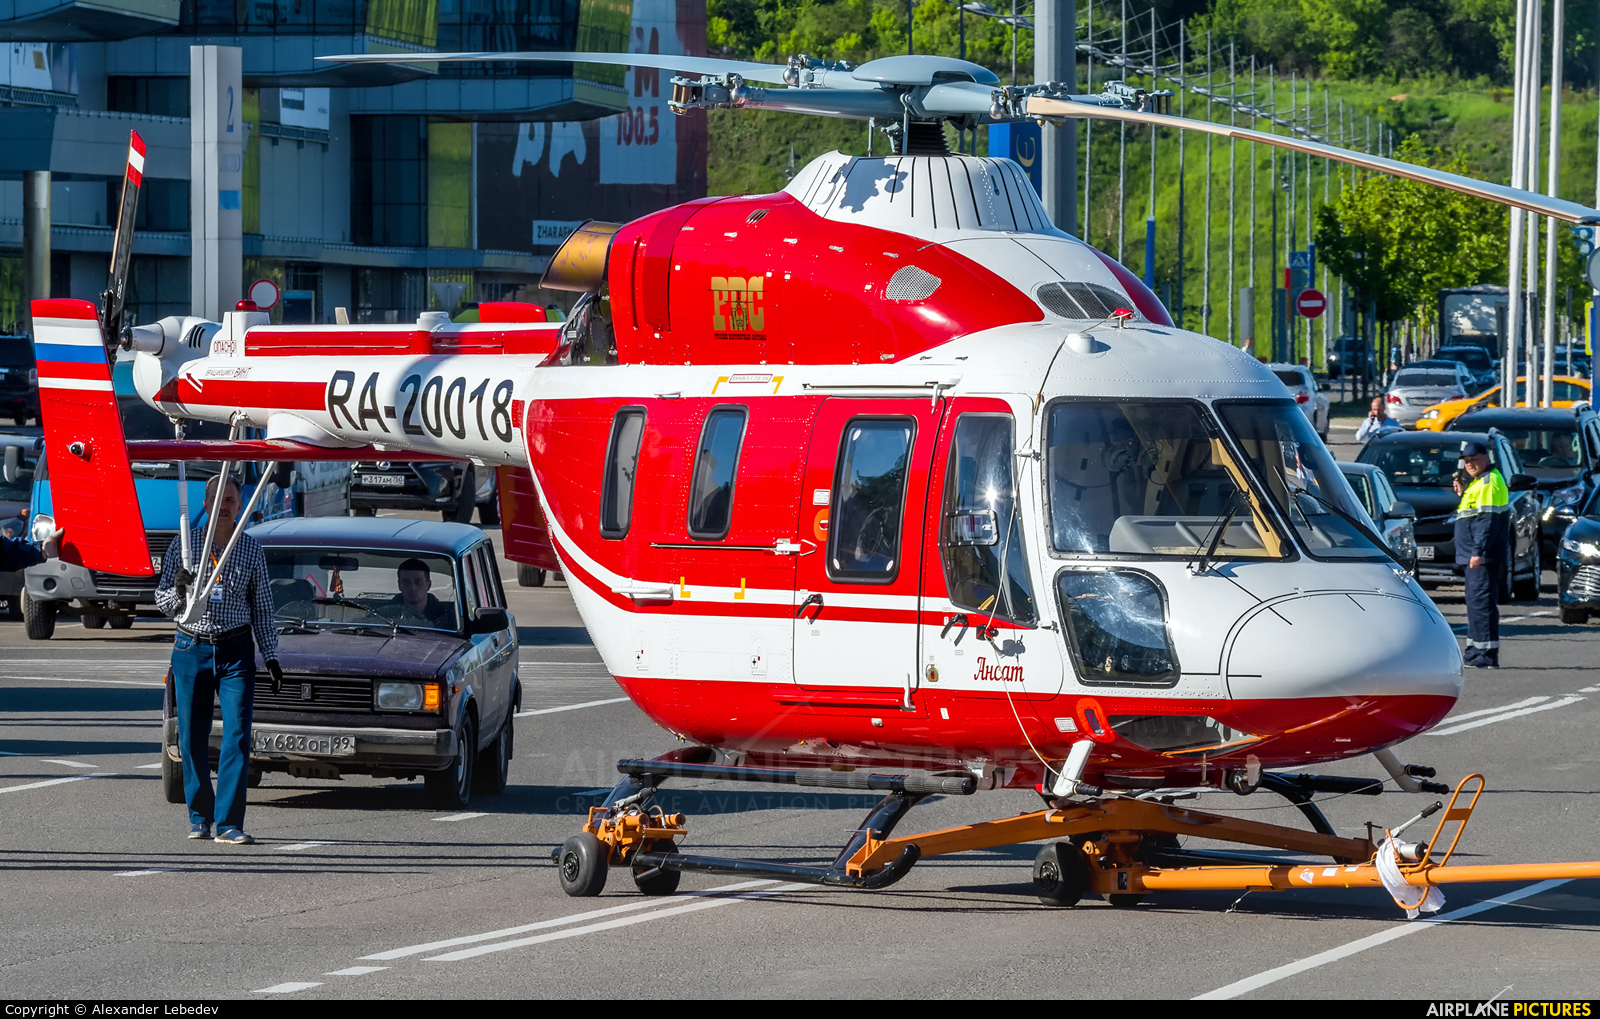 Russia - МЧС России EMERCOM RA-20018 aircraft at Moscow - Heliport Krokus